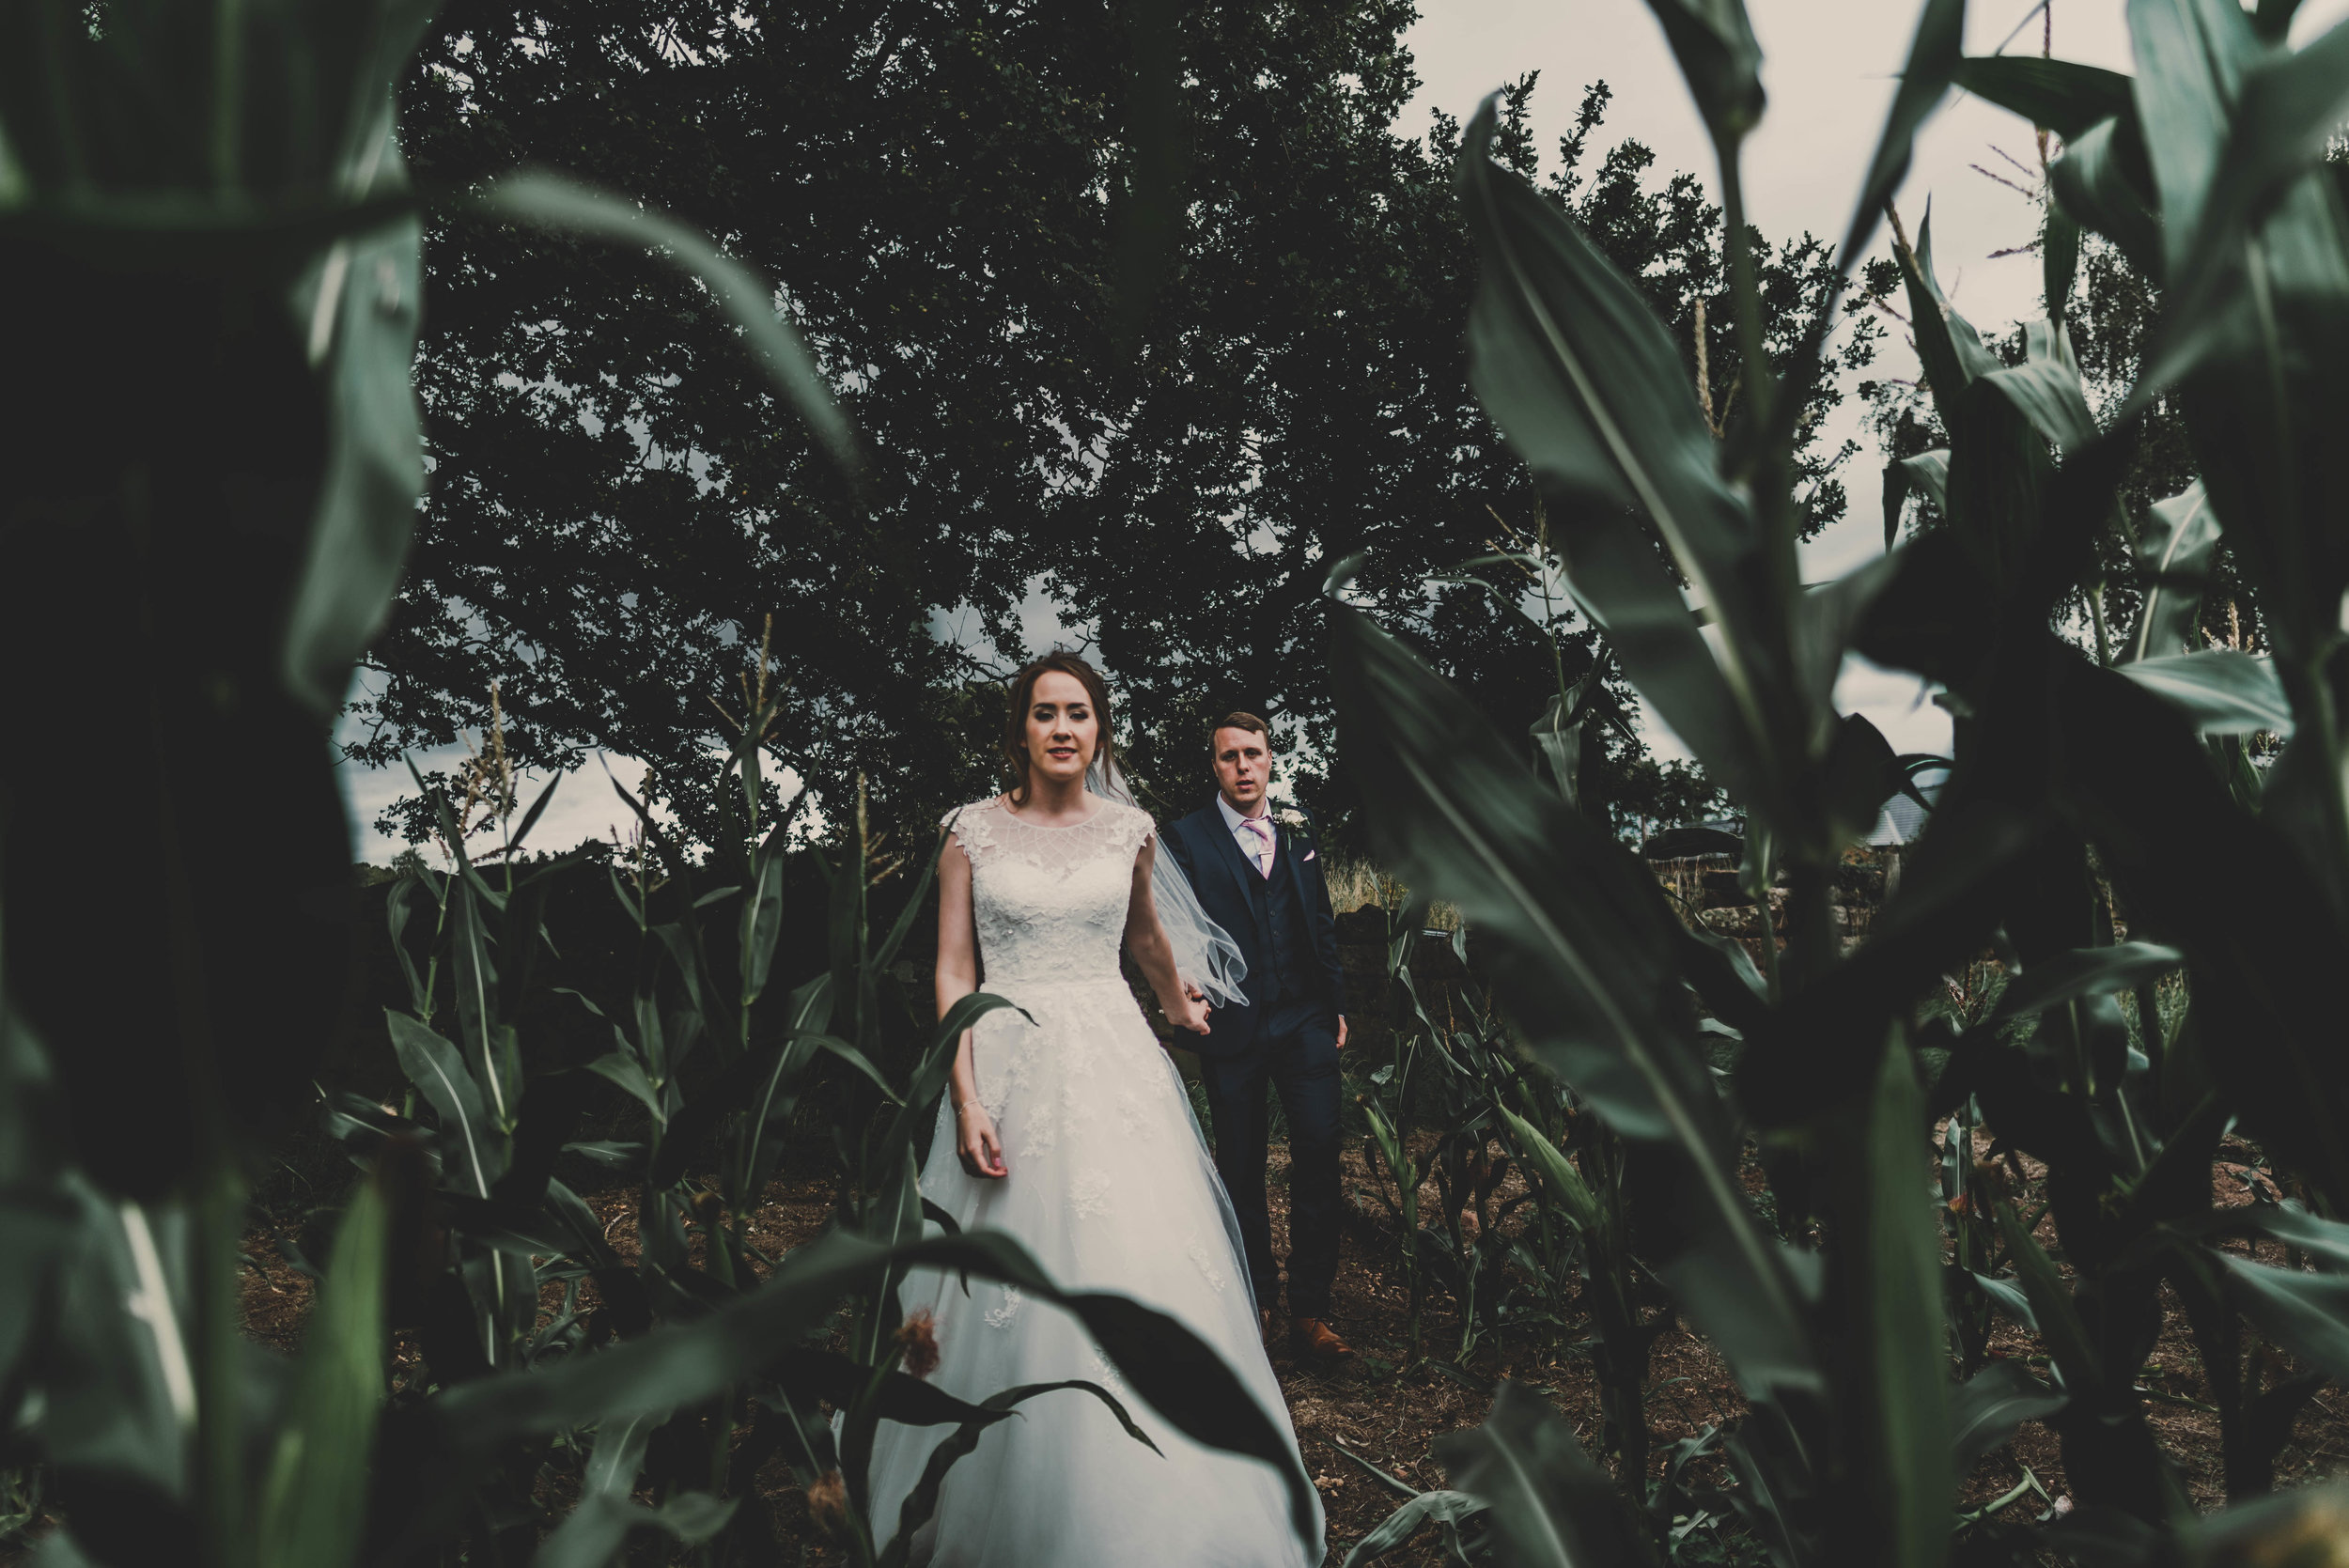 alternative-elopement-wedding-photography-in durban-south-africa (16).jpg